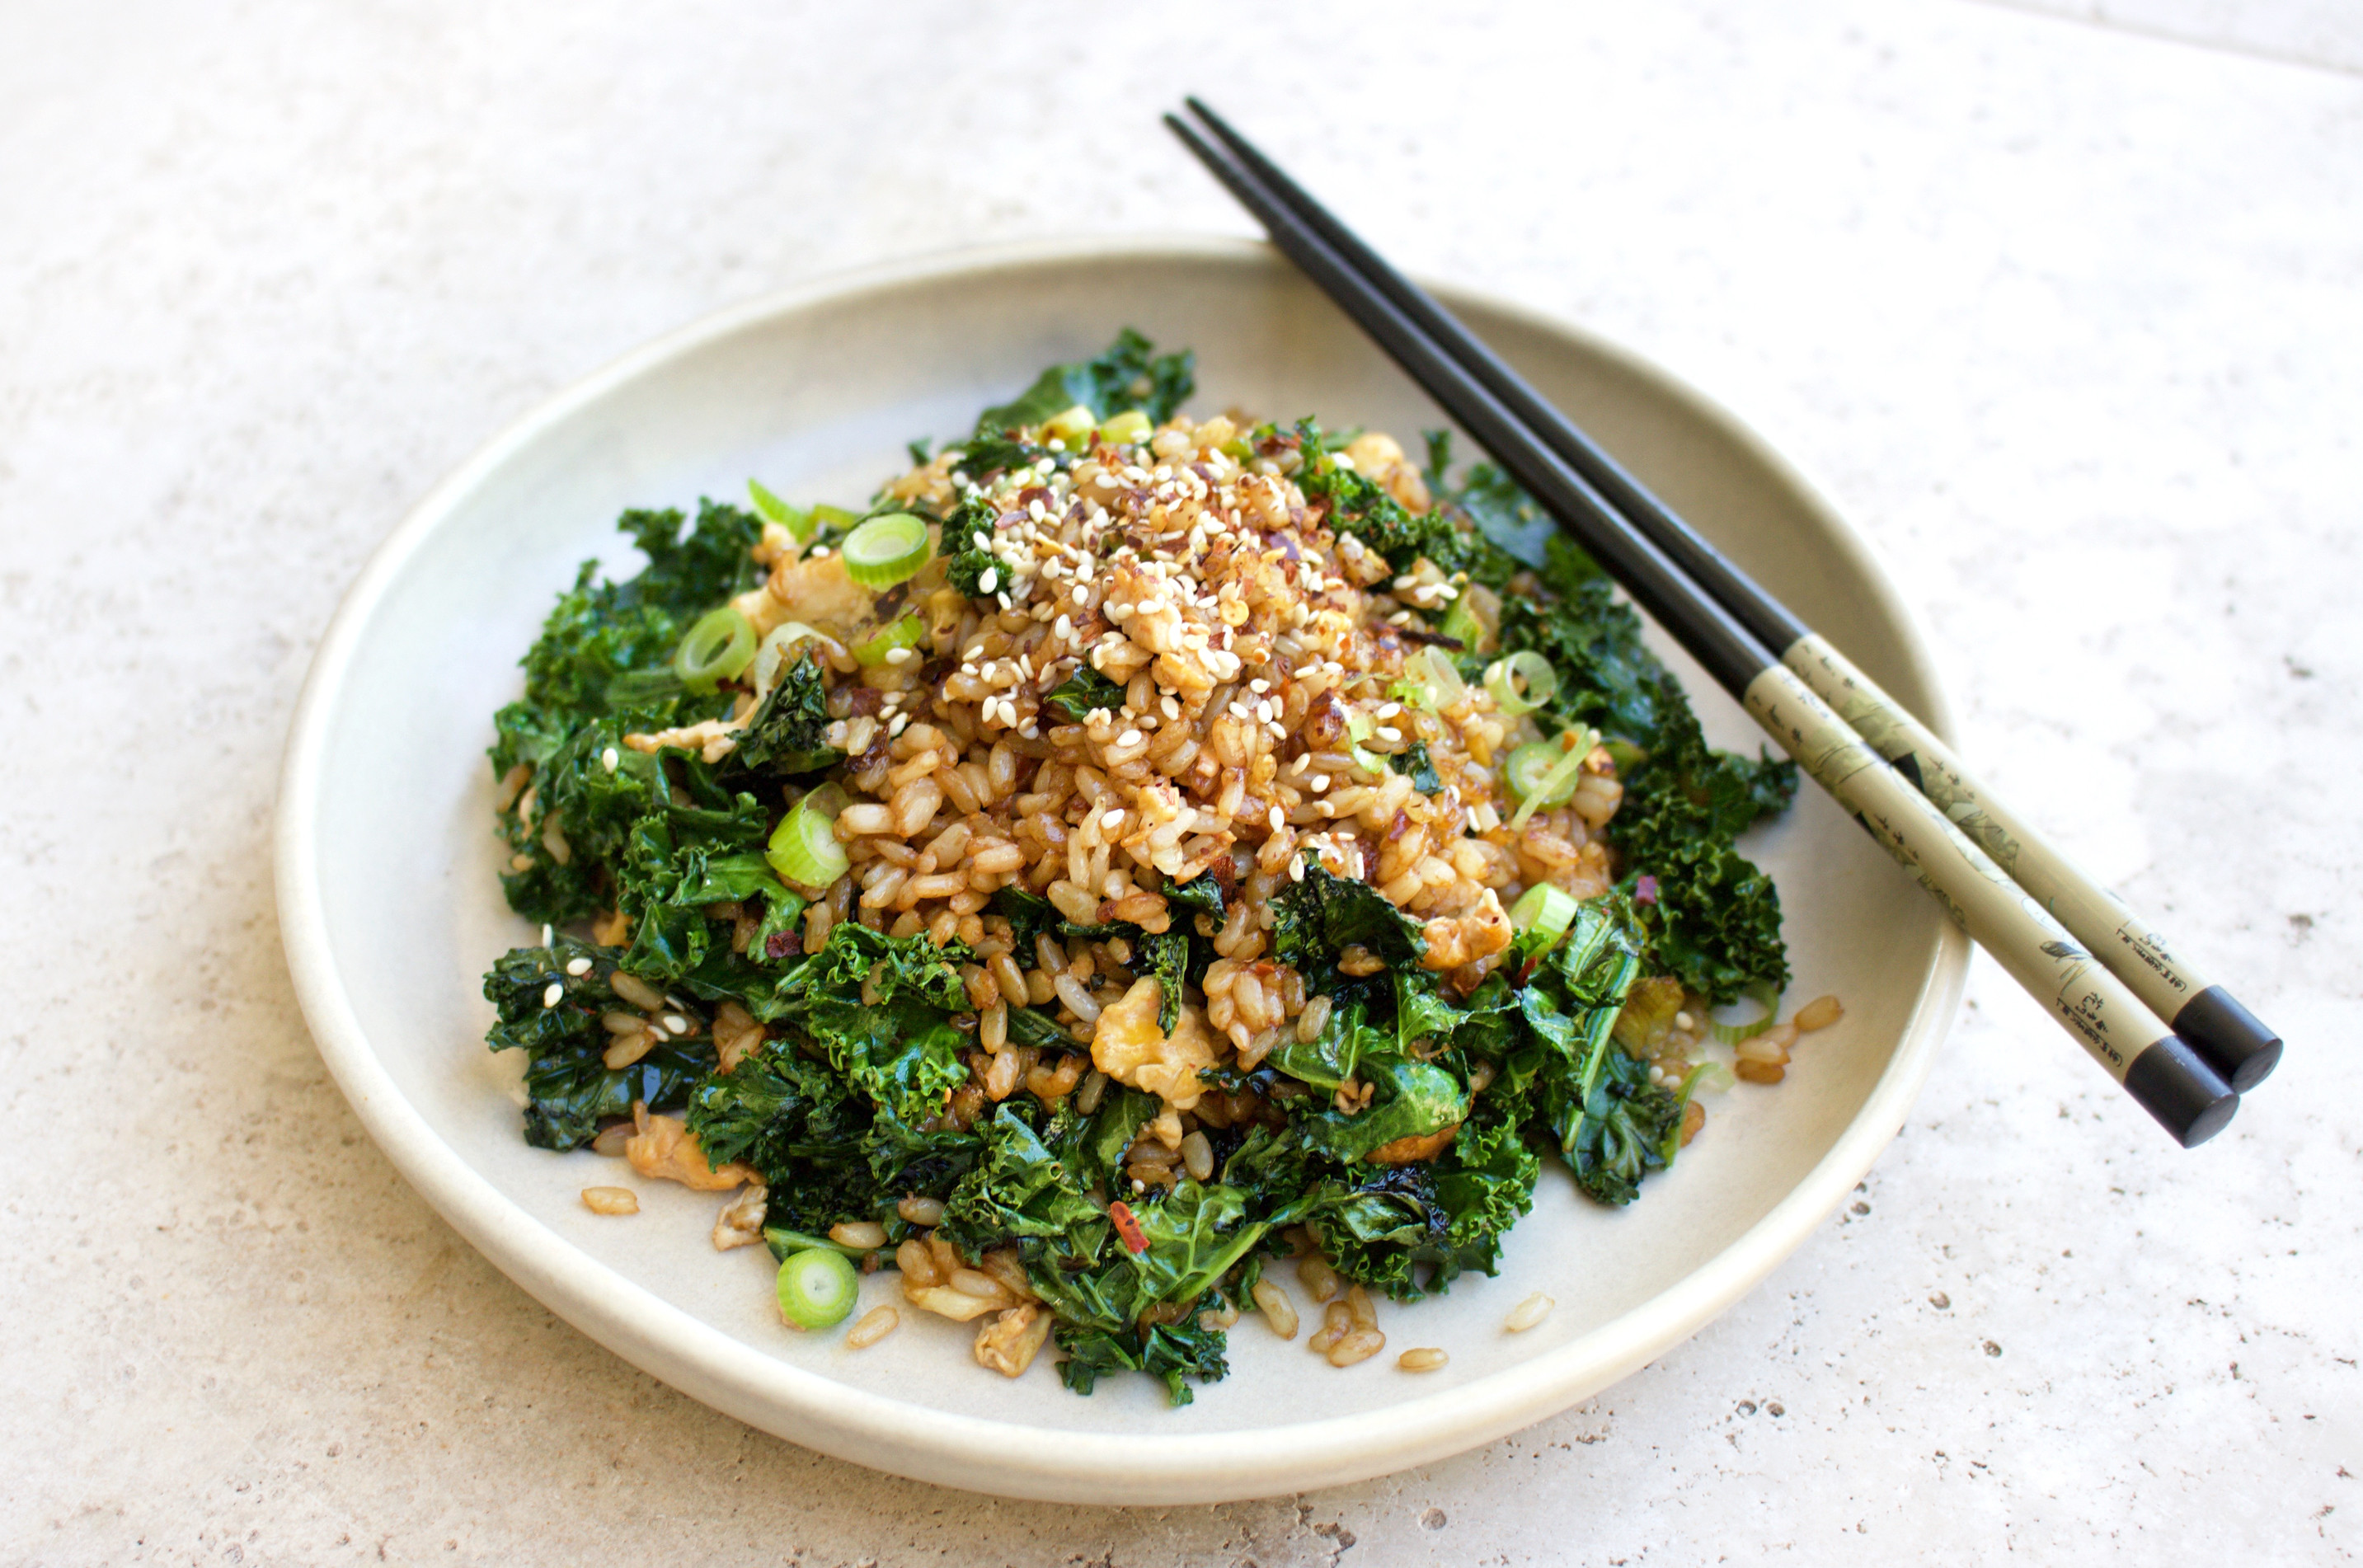 Healthy Recipes With Kale  Healthy Fried Rice Recipe w Kale Garlic & Chili